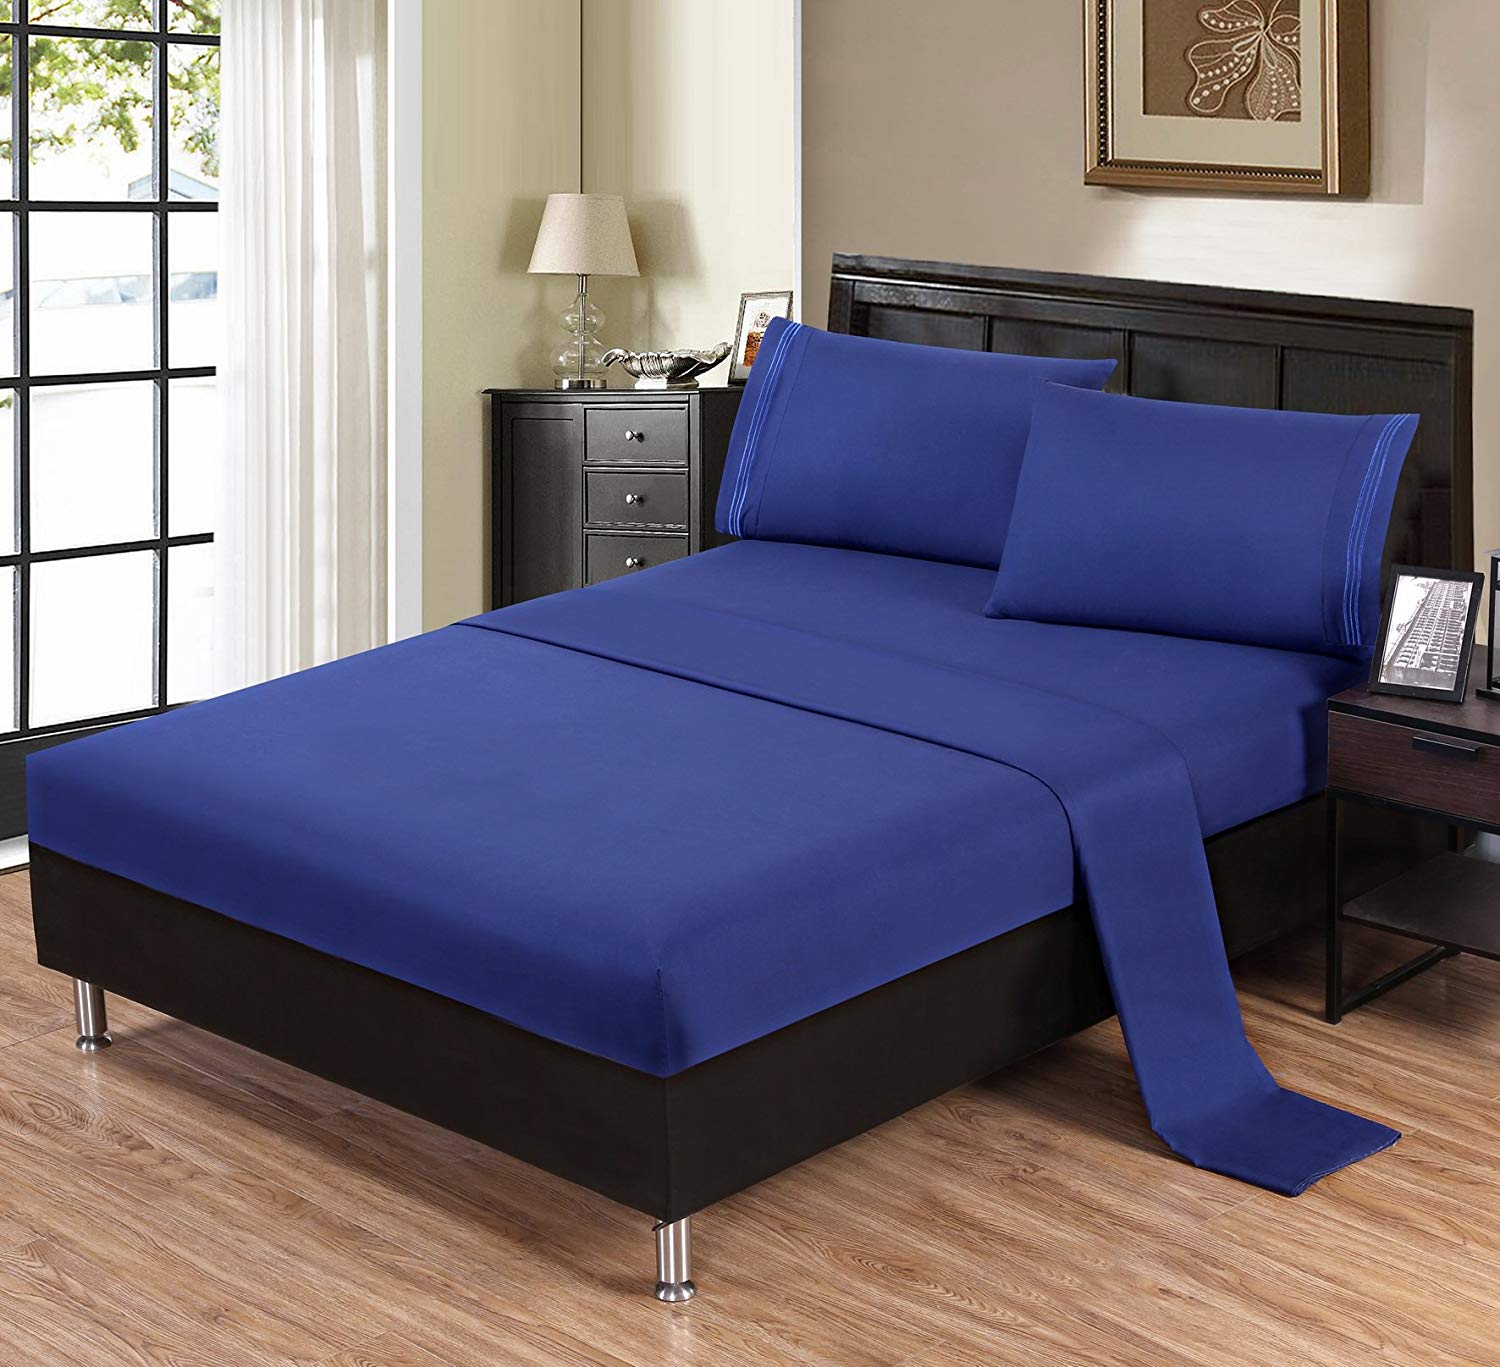 Unique Home Ultra Soft, Fade Resistant, Wrinkle Free, No Ironing Necessary, Hypoallergenic Luxury Bed Linens 1800 Series Microfiber Sheet Set (Navy, King 3LN)